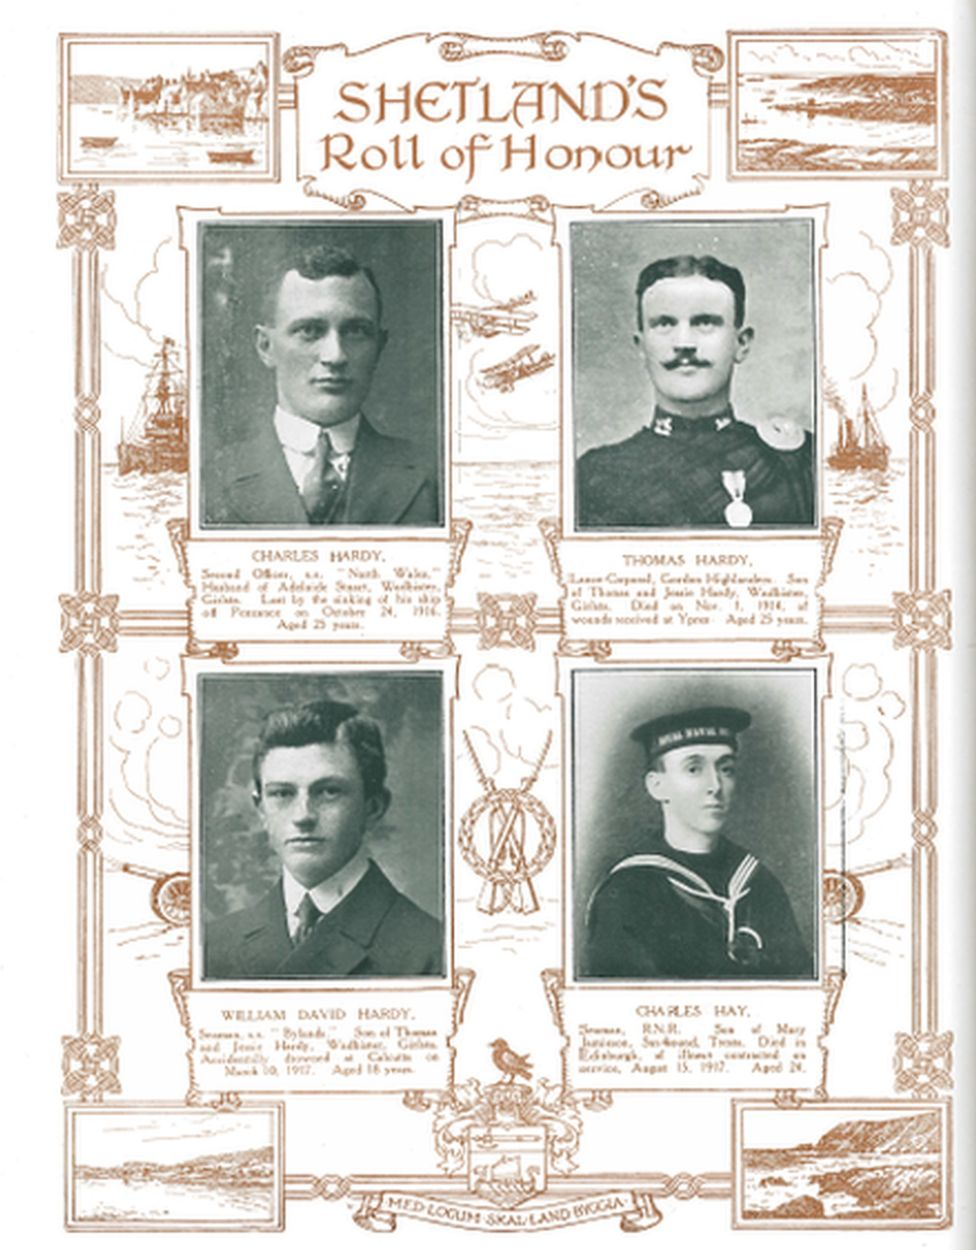 Image from Shetland's Roll of Honour